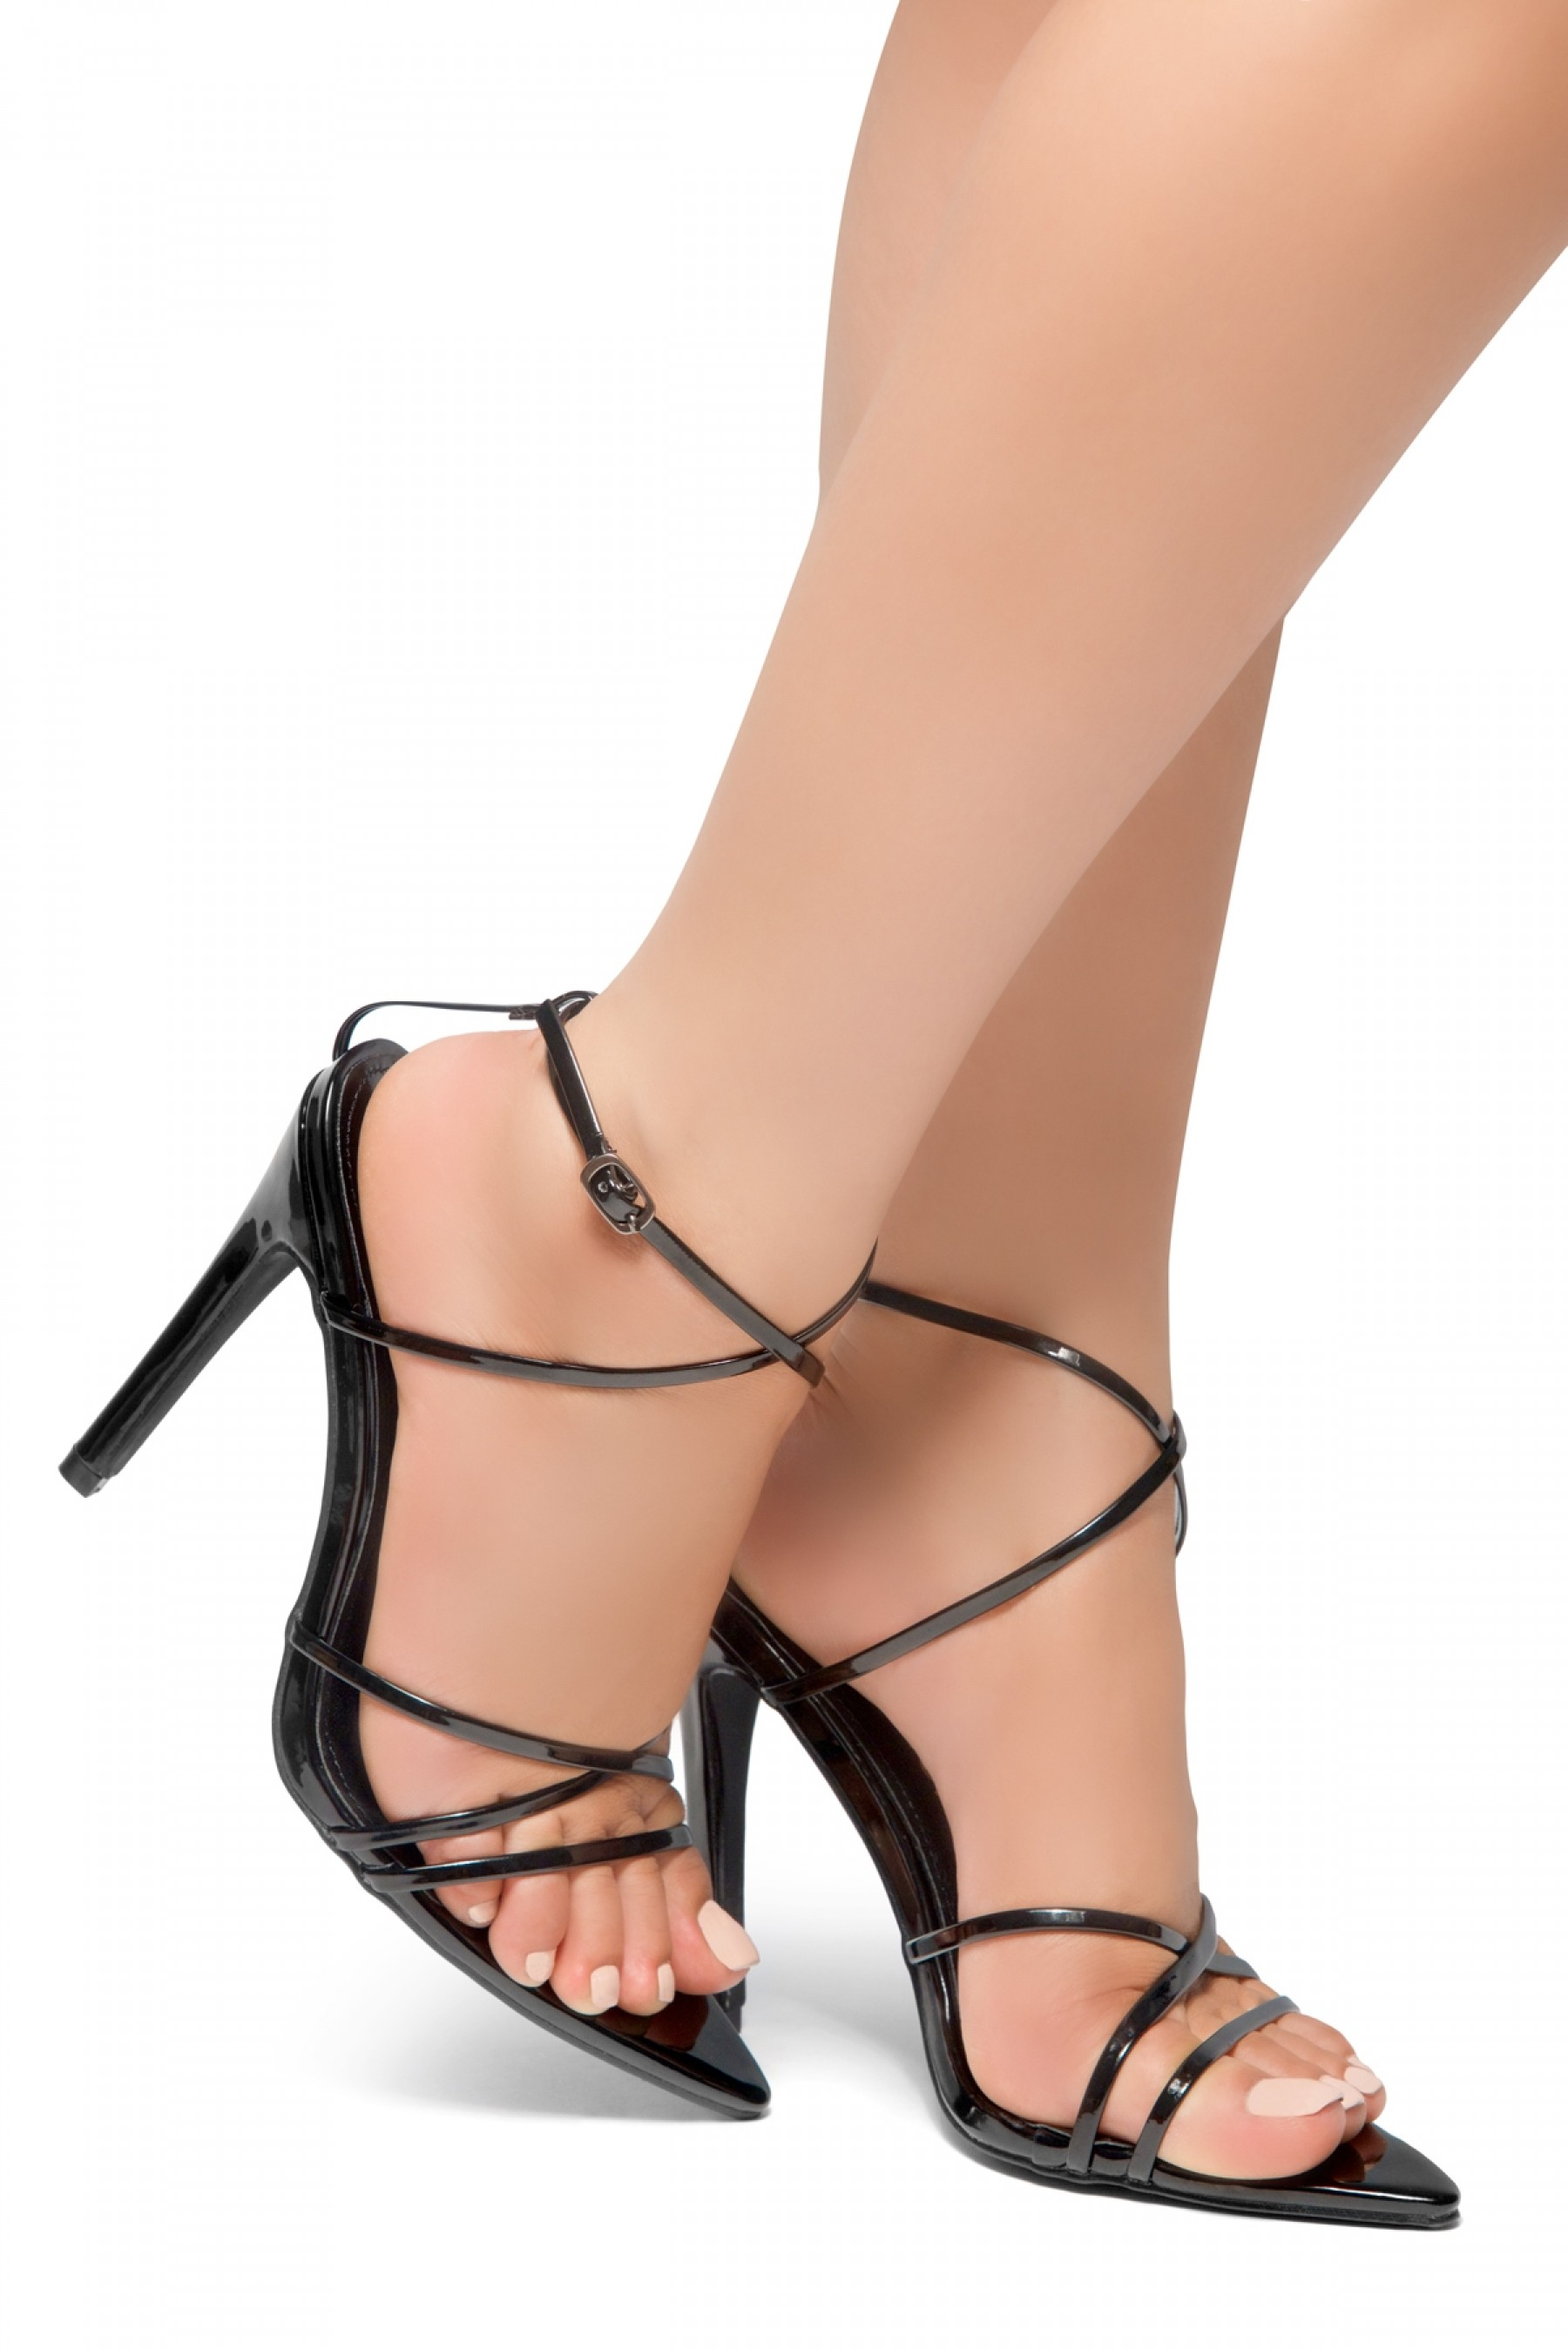 HerStyle Twist-Pointed Toe Straps Vamp Straps across Ankle Stiletto Heel Sandal (Black)